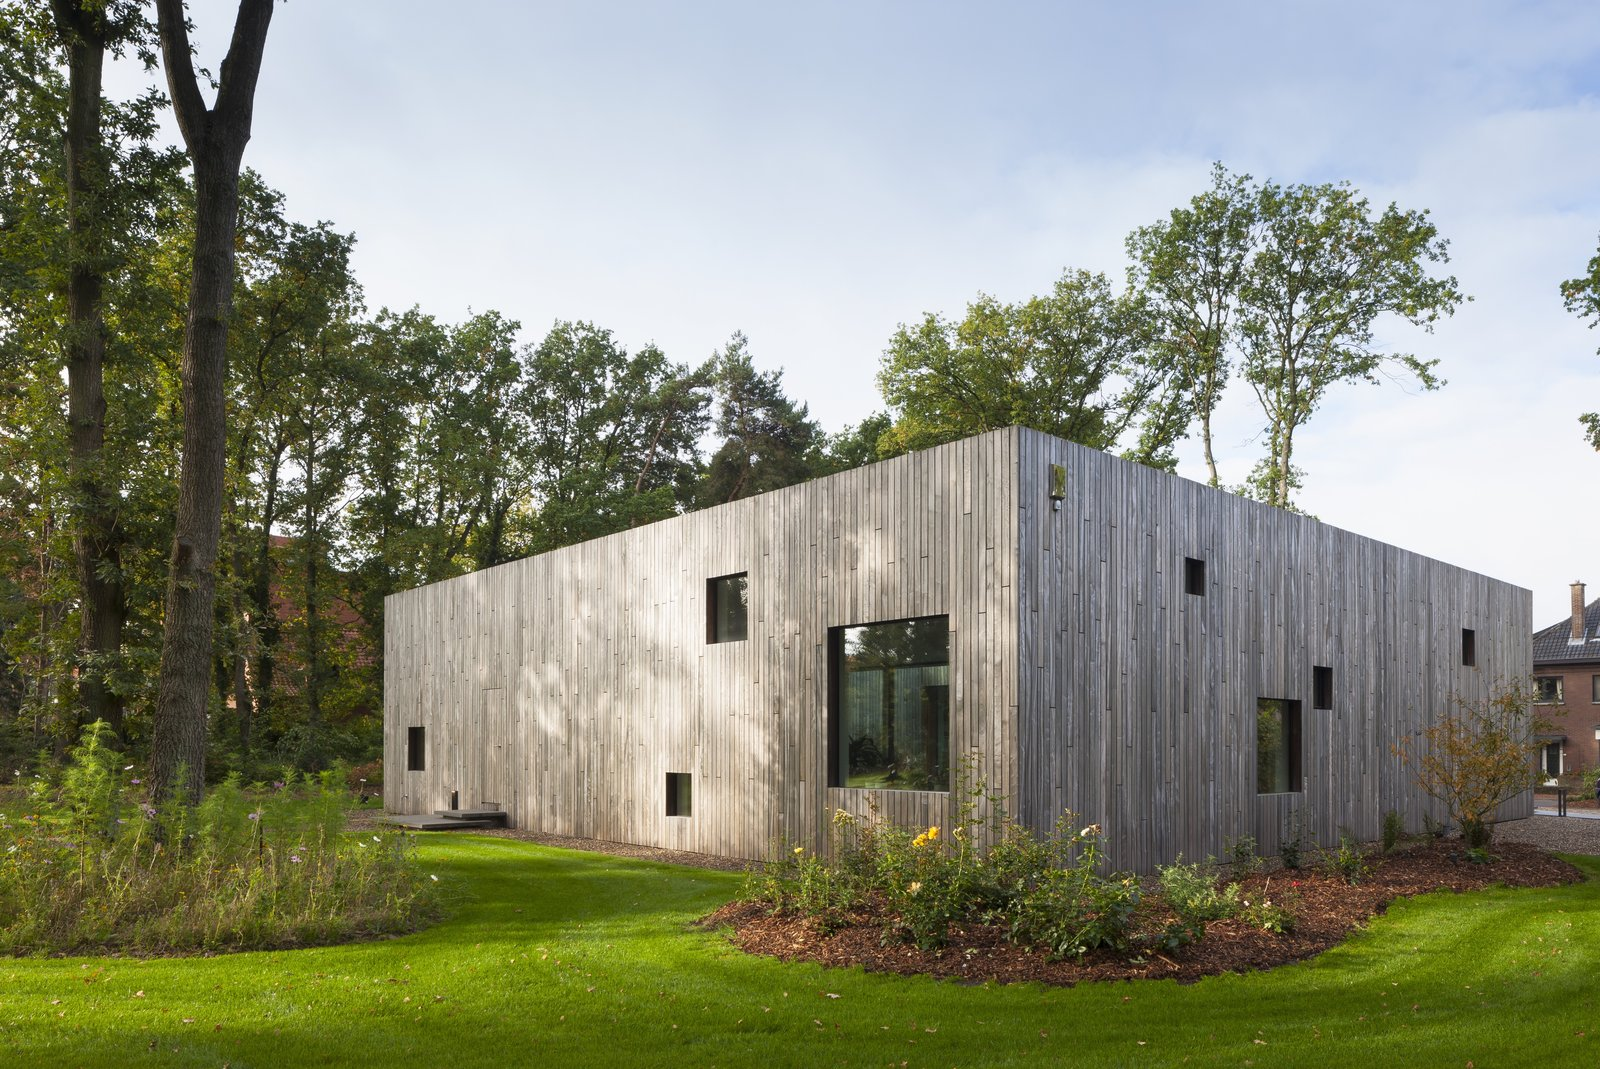 Exterior, Wood Siding Material, House Building Type, and Flat RoofLine The house was constructed with a wooden frame and cellulose insulation.  Best Photos from A Belgian Architect's Courtyard House Offers Work/Life Balance